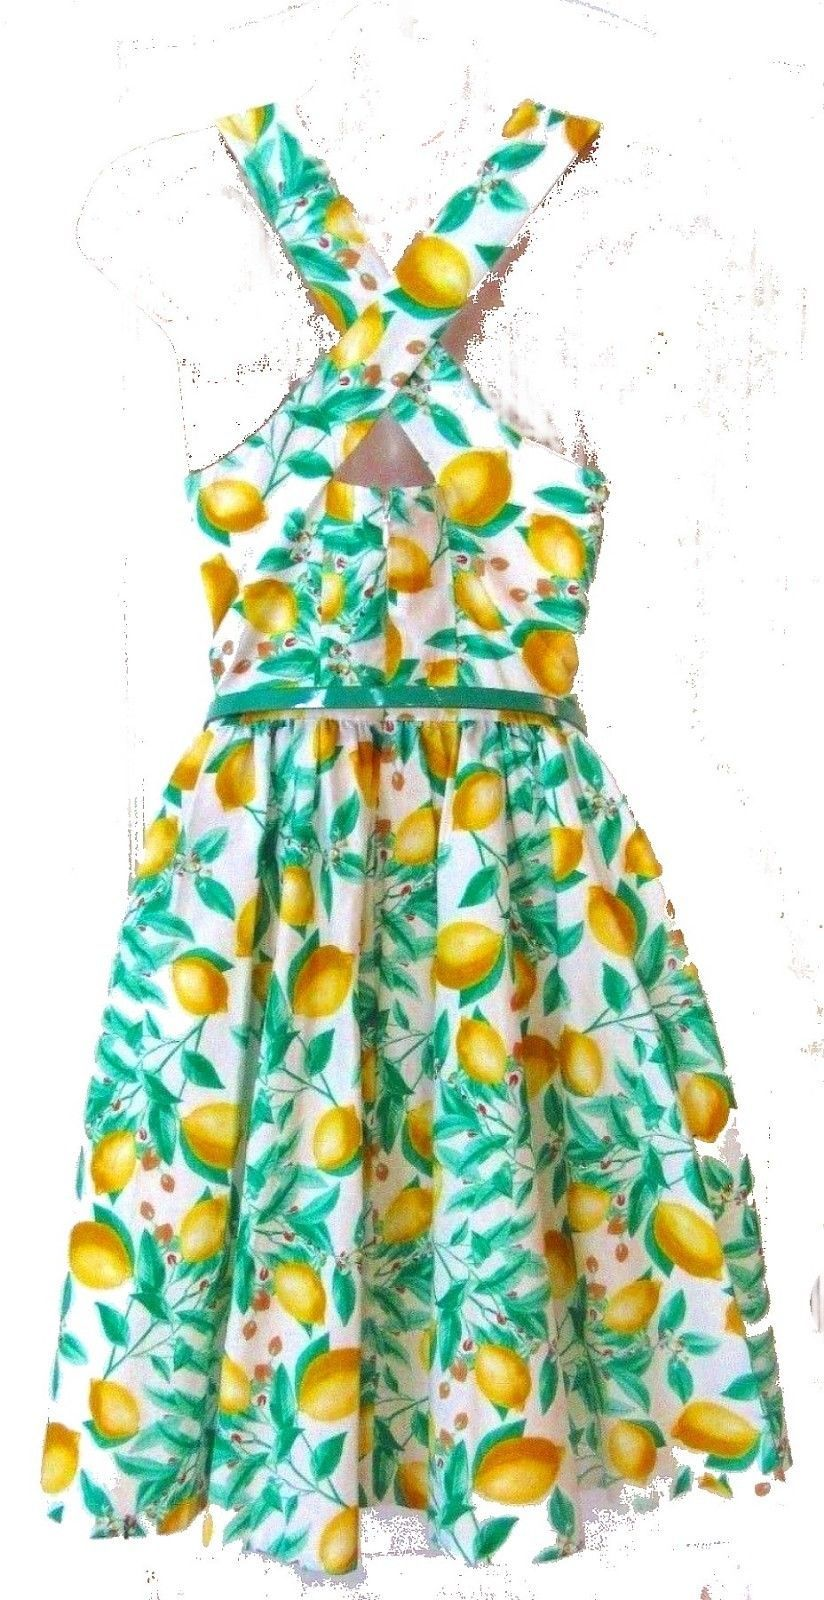 Elle Lemon Print Sundress Dress w/Skinny Belt Criss Cross back NWOT$60 Size 14